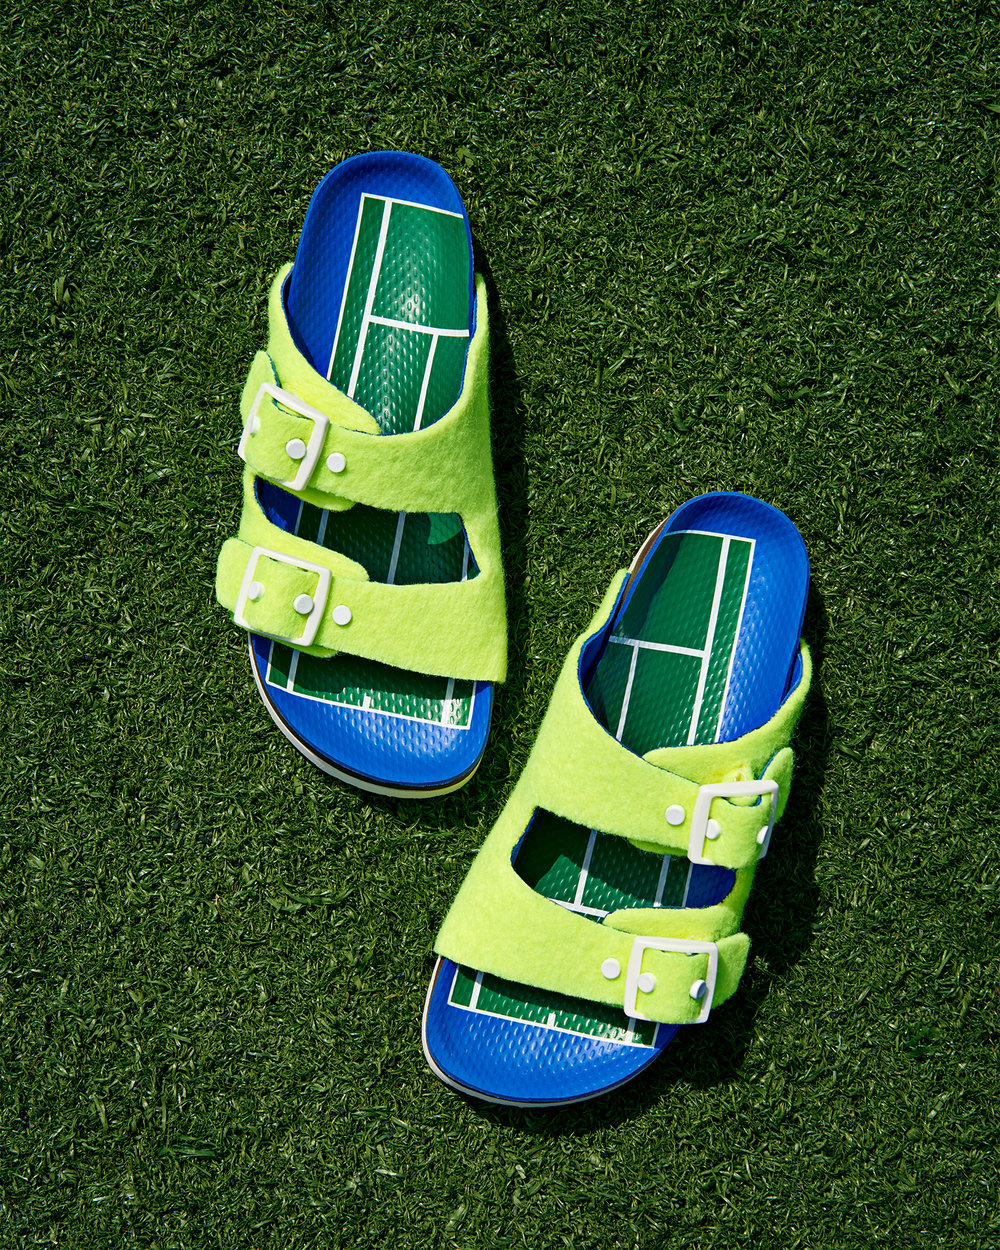 Sandles on Grass 1 v1.jpg